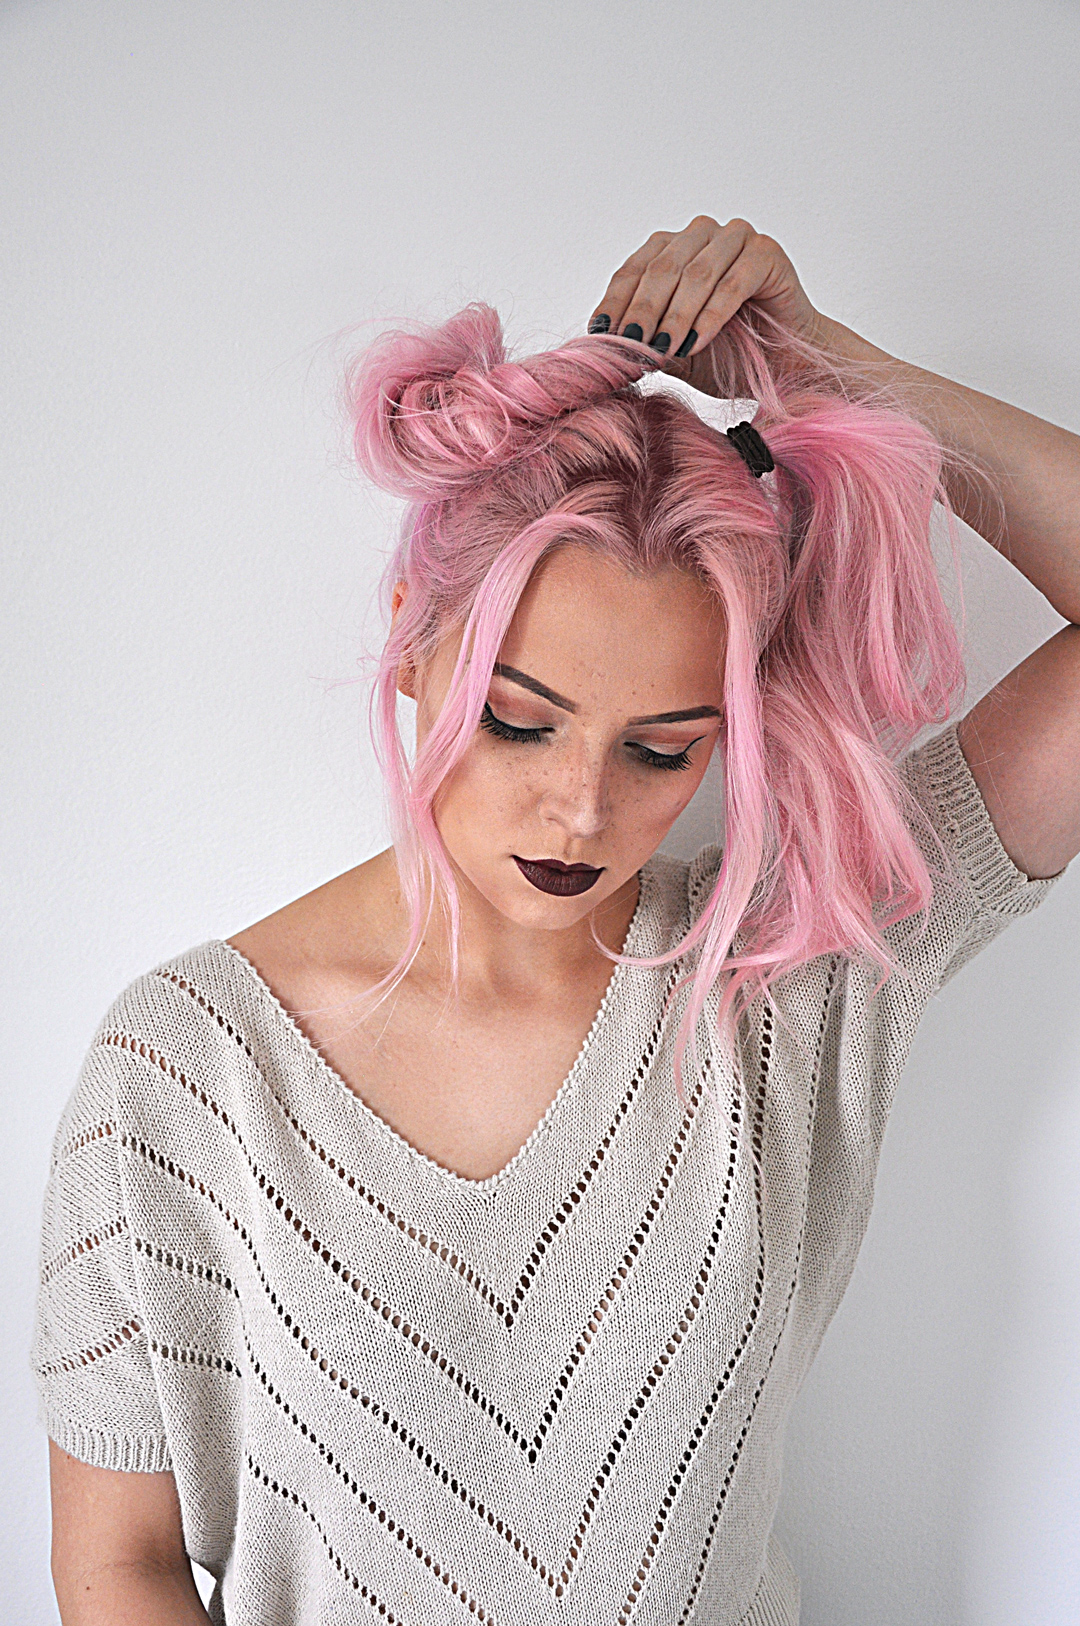 Say goodbye to boring hair and hello to fun with this space buns hairstyle tutorial. Recreate this look at home. It's super easy and only takes 5 minutes!